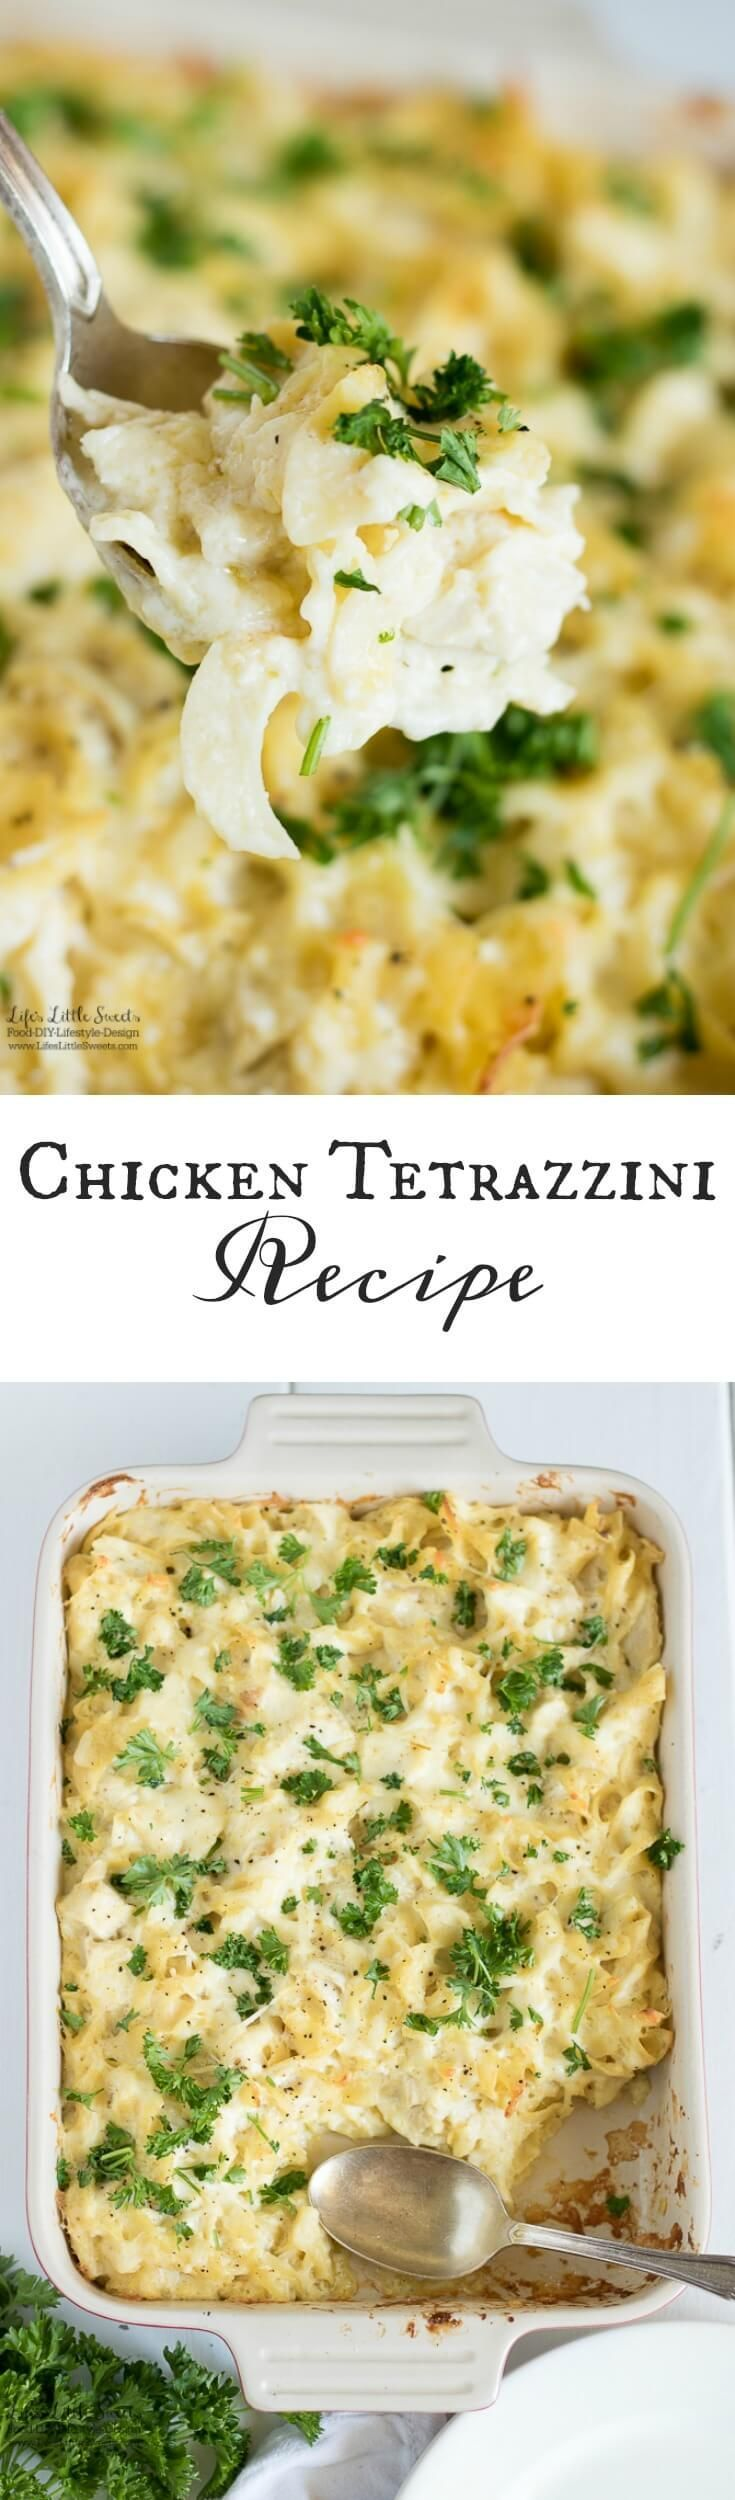 This Chicken Tetrazzini Recipe is a creamy, cheesy, flavorful and satisfying one-dish casserole that feeds a crowd. It includes an option to swap out sour cream for plain Greek yogurt (serves 12). www.lifeslittlesweets.com